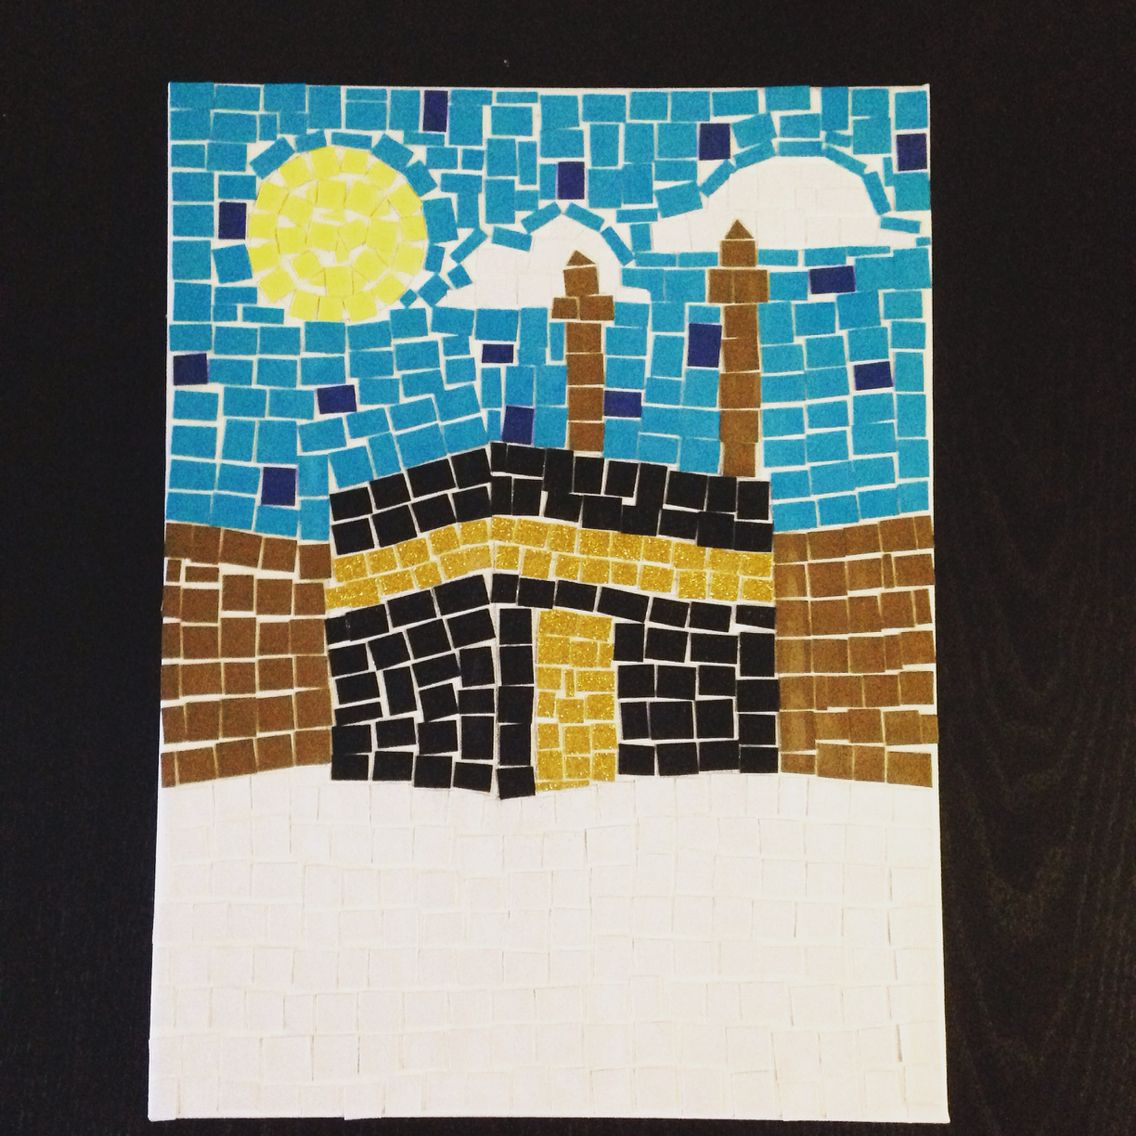 Eid Al Adha Kaaba Mosaic Craft For Kids Eid Crafts Ramadan